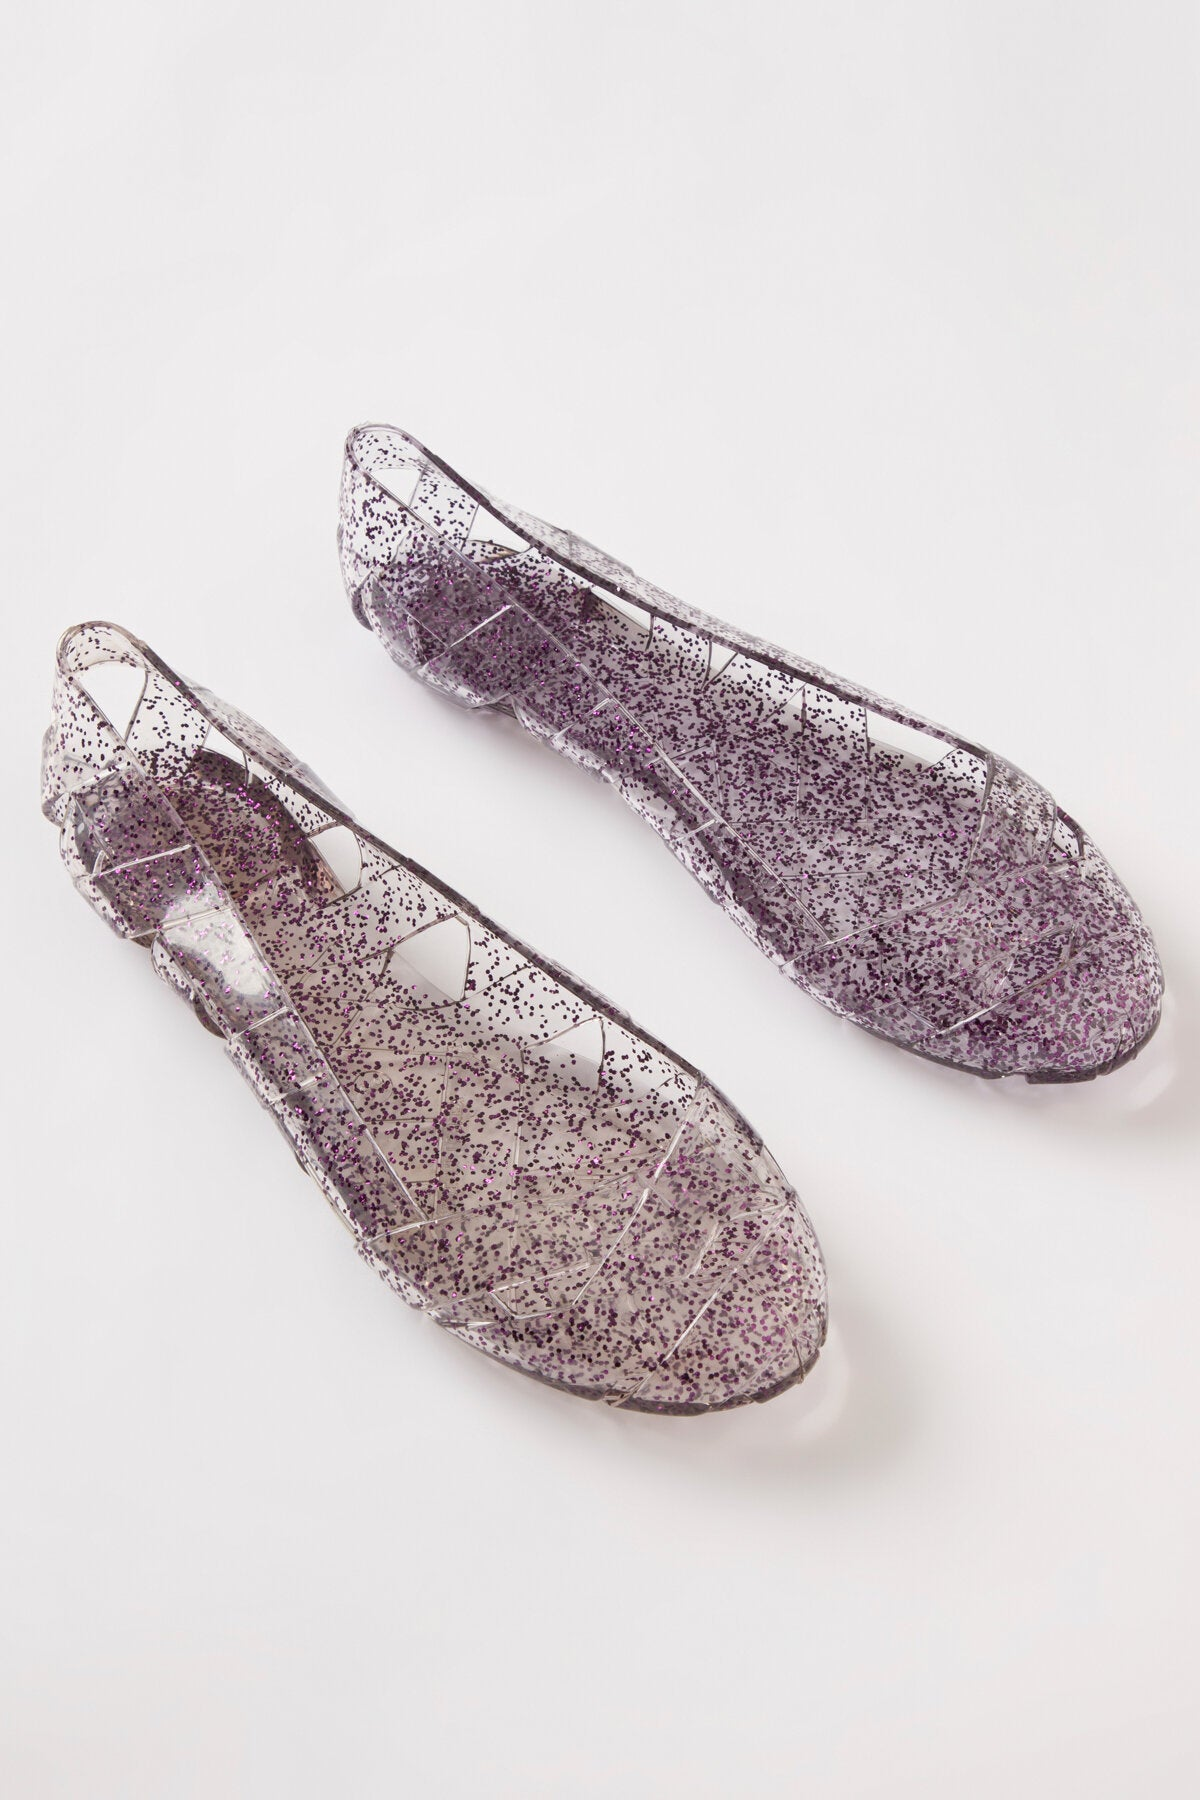 BEACH JELLY SHOES IN PLUM